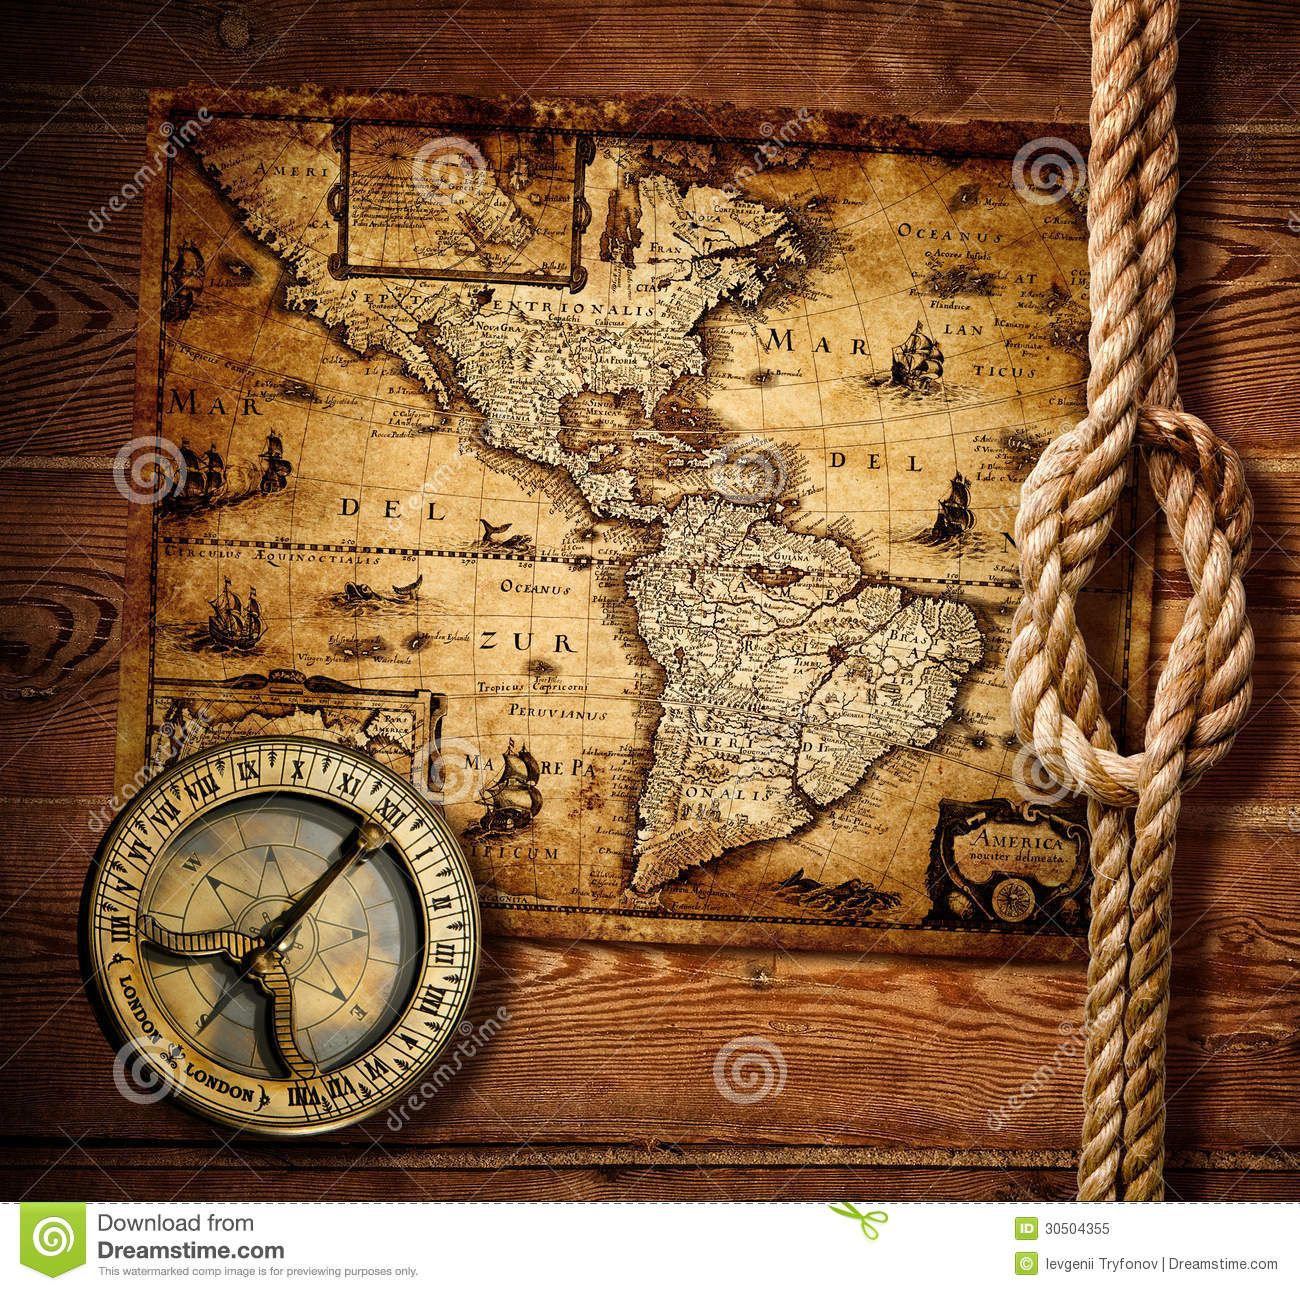 Photo About Old Compass And Rope On Vintage Map Of America Image Of Background Illustration America 30504355 Vintage Maps Antique Maps Vintage Map